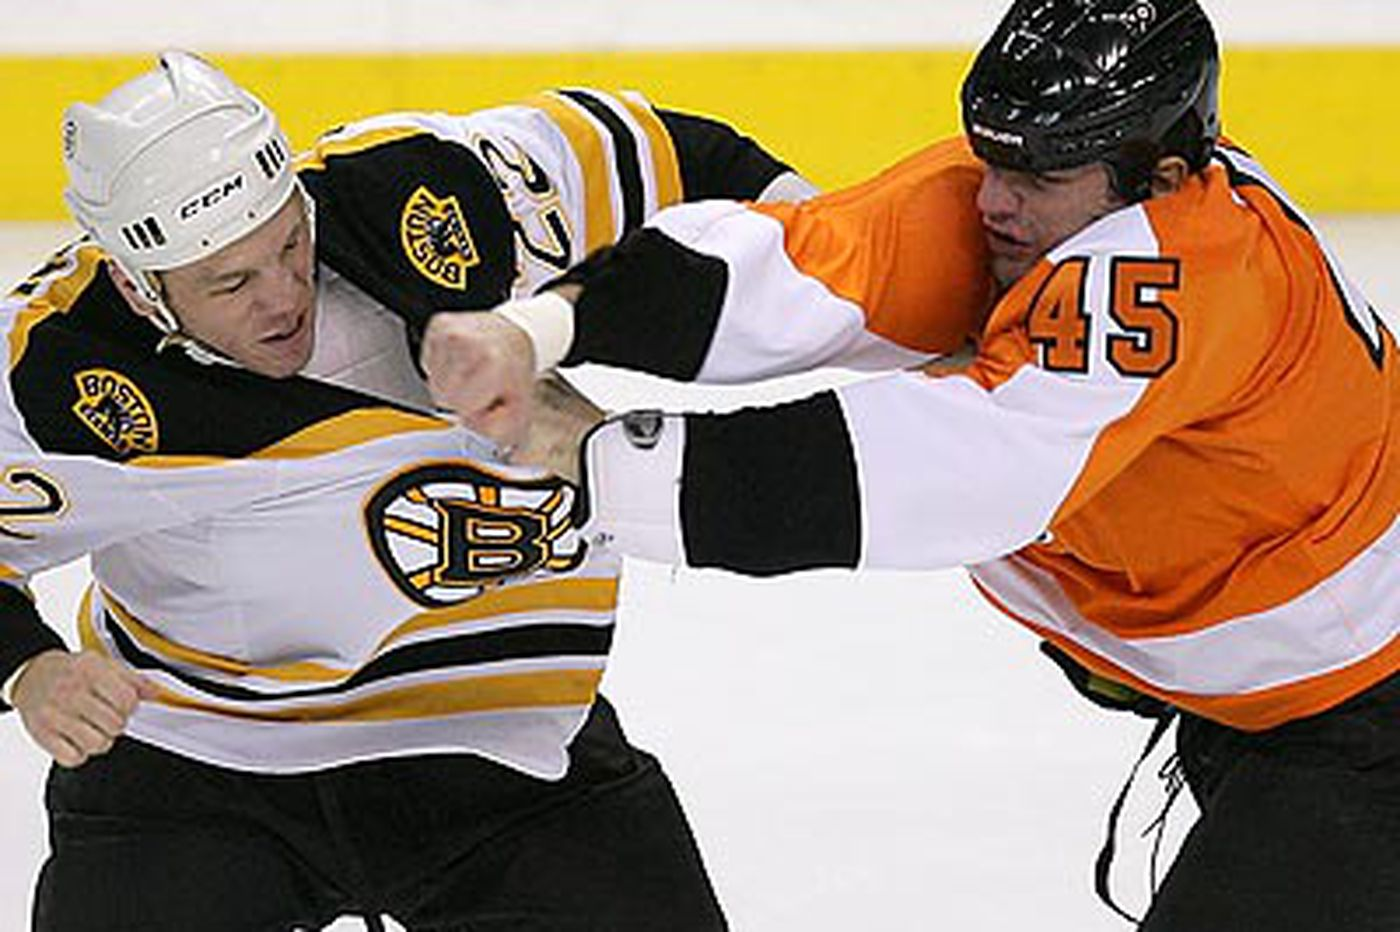 Flyers Notes: Flyers' Shelley suspended two games for hard hit